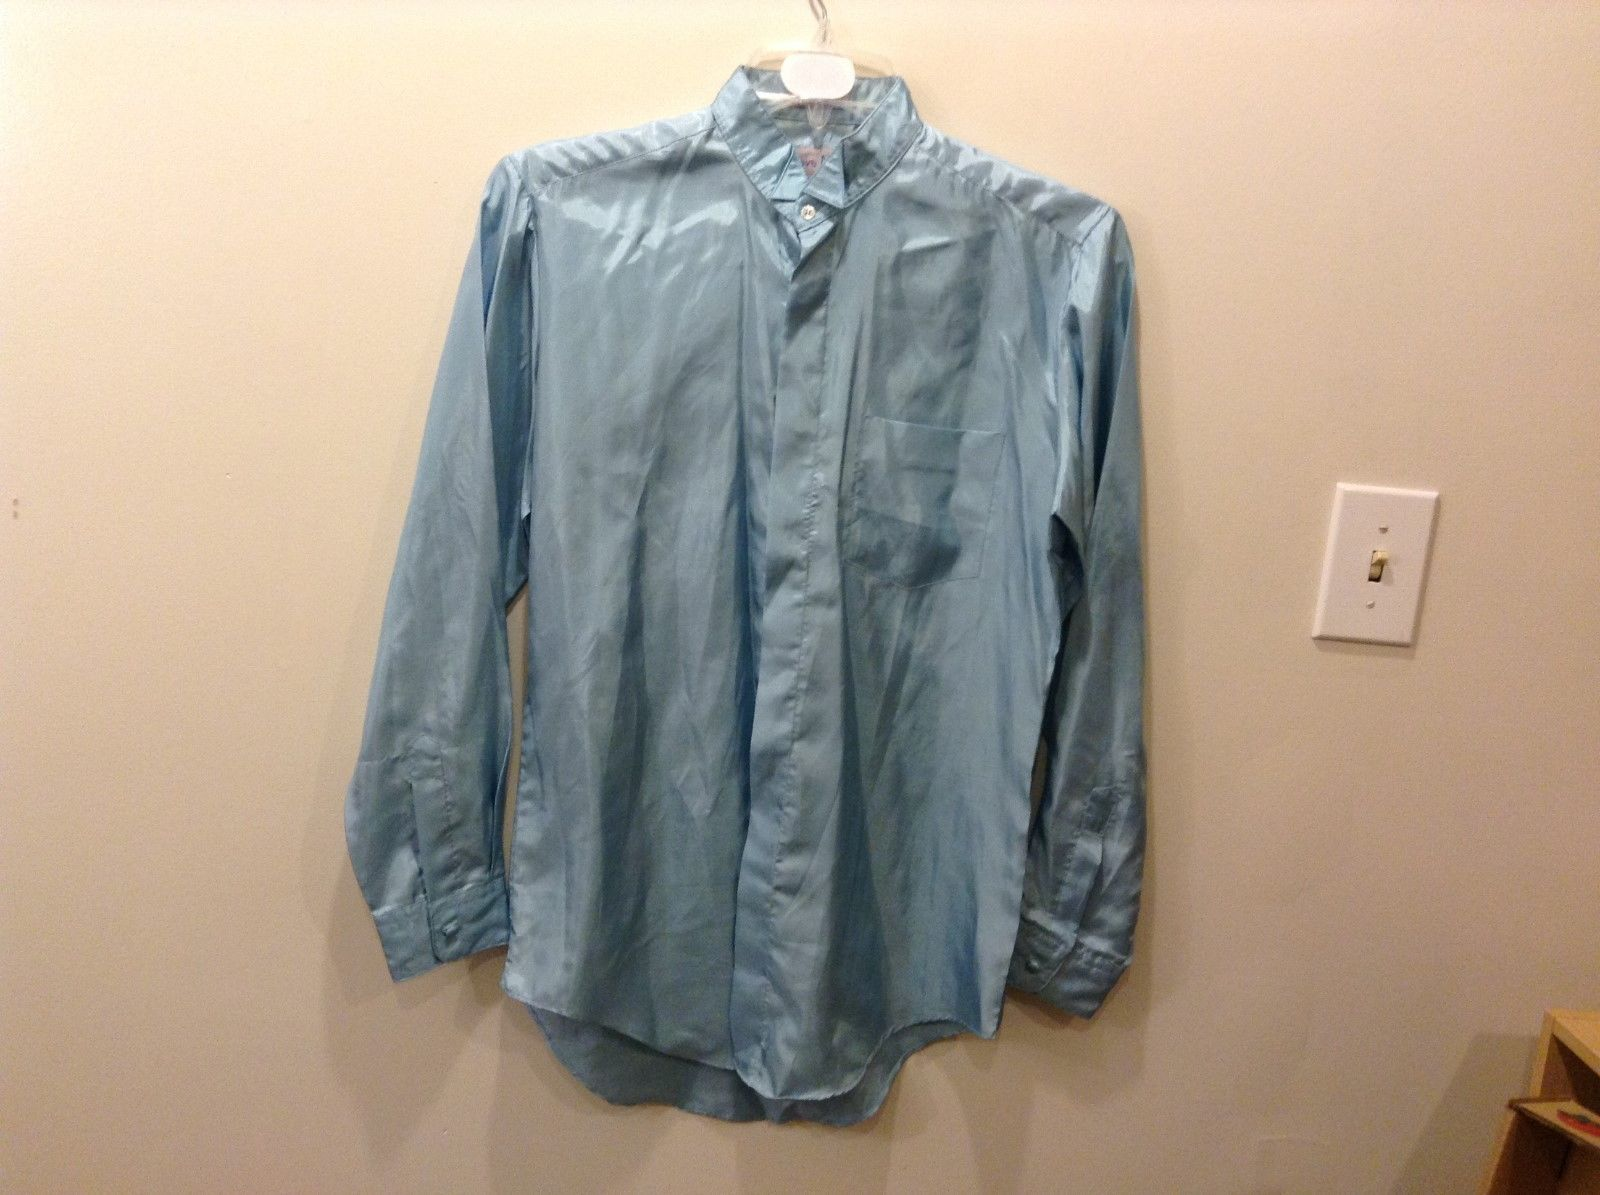 Today's Man 100% Polyester Fused Collar Light Blue Button Down Shirt